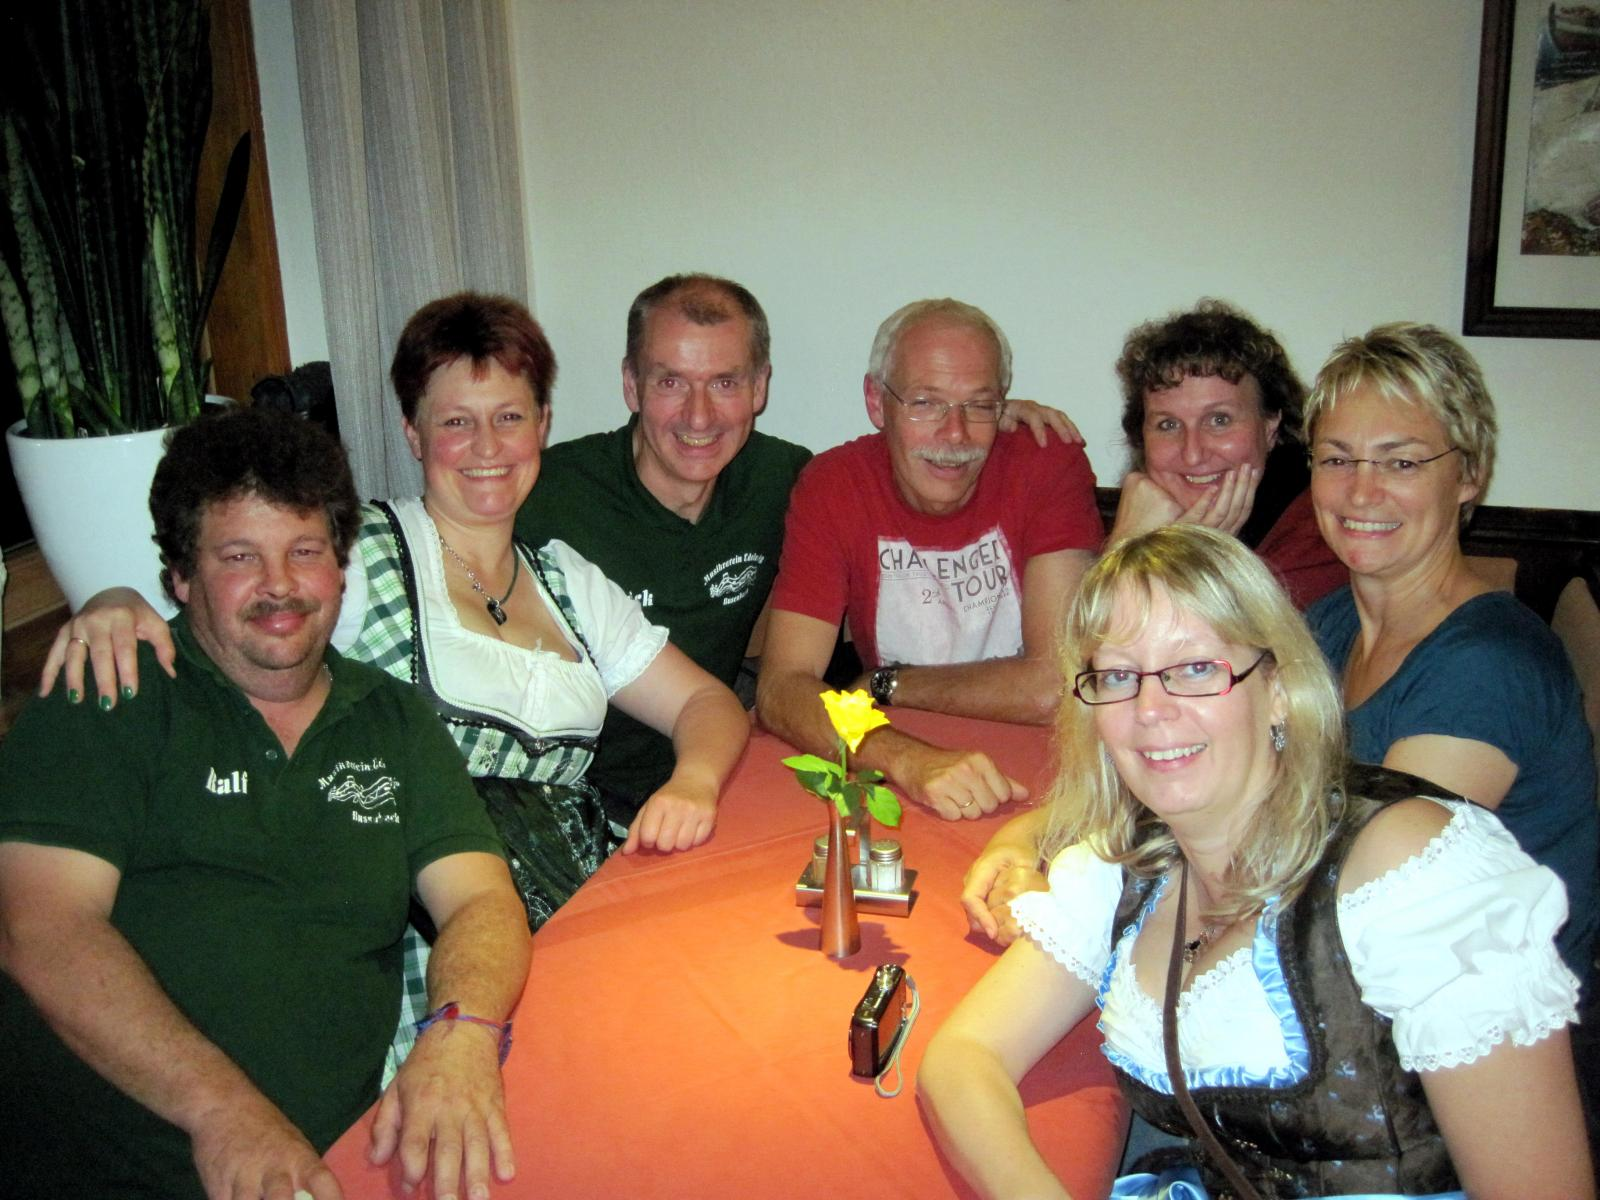 IMG_7947-a